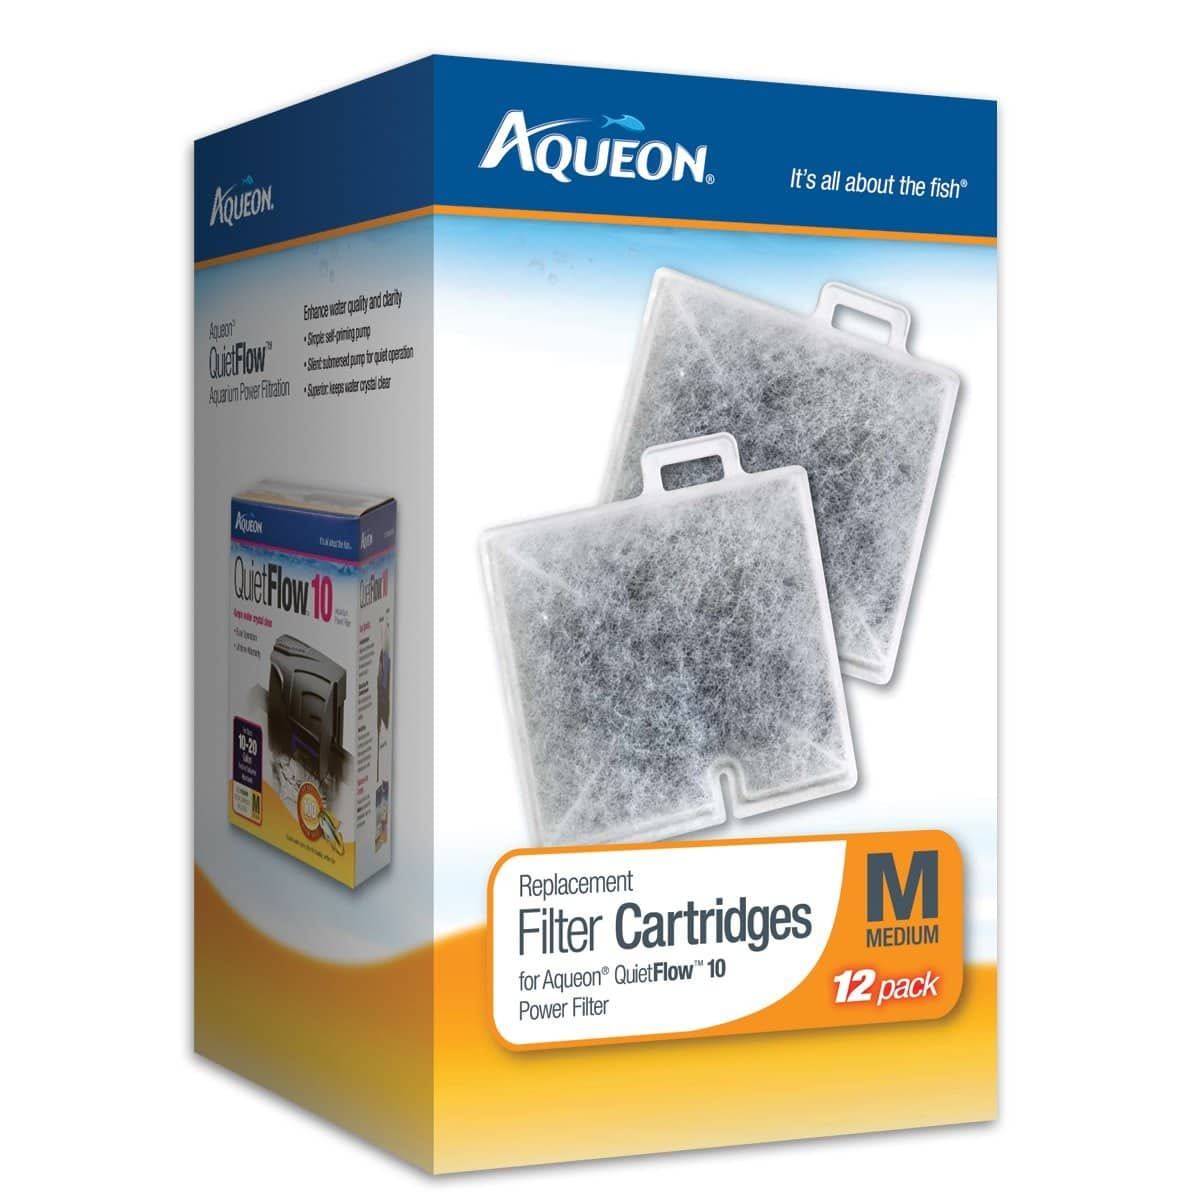 12-Pack Aqueon Replacement Aquarium Filter Cartridges (Medium) $11.58 or Less w/ S&S + Free Shipping ~ Amazon